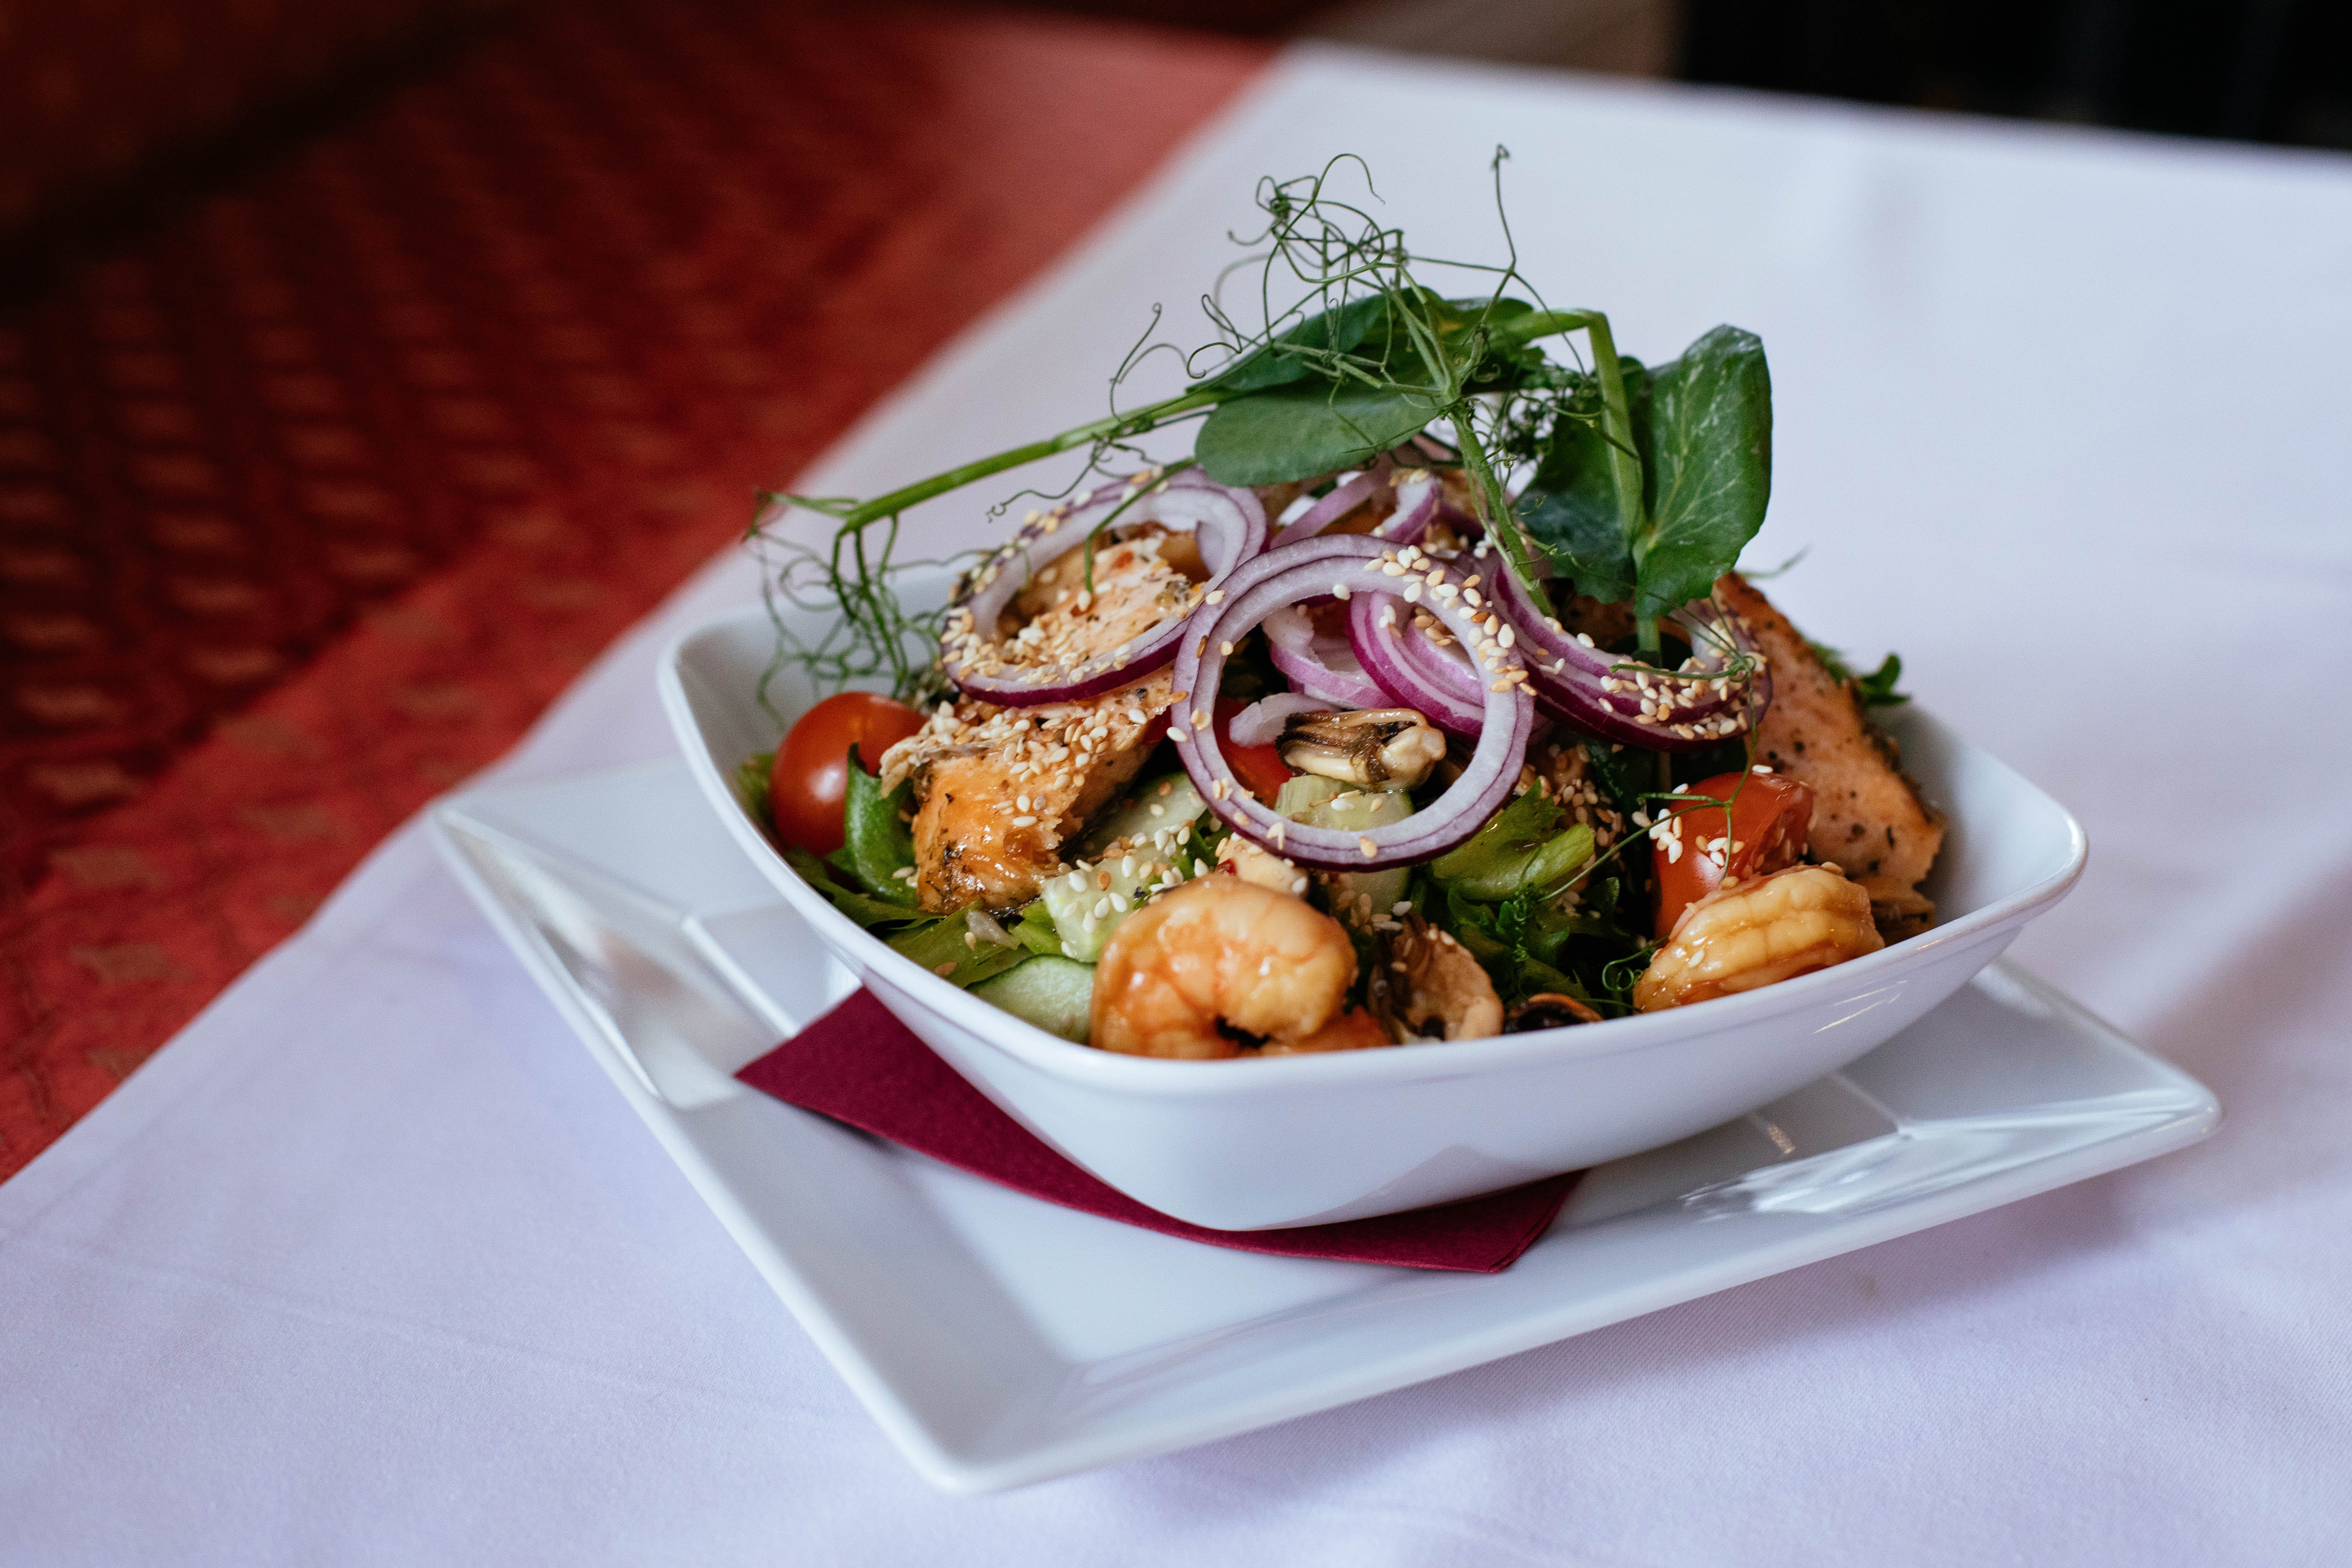 Cooked Shrimp With Vegetables On Square Bowl